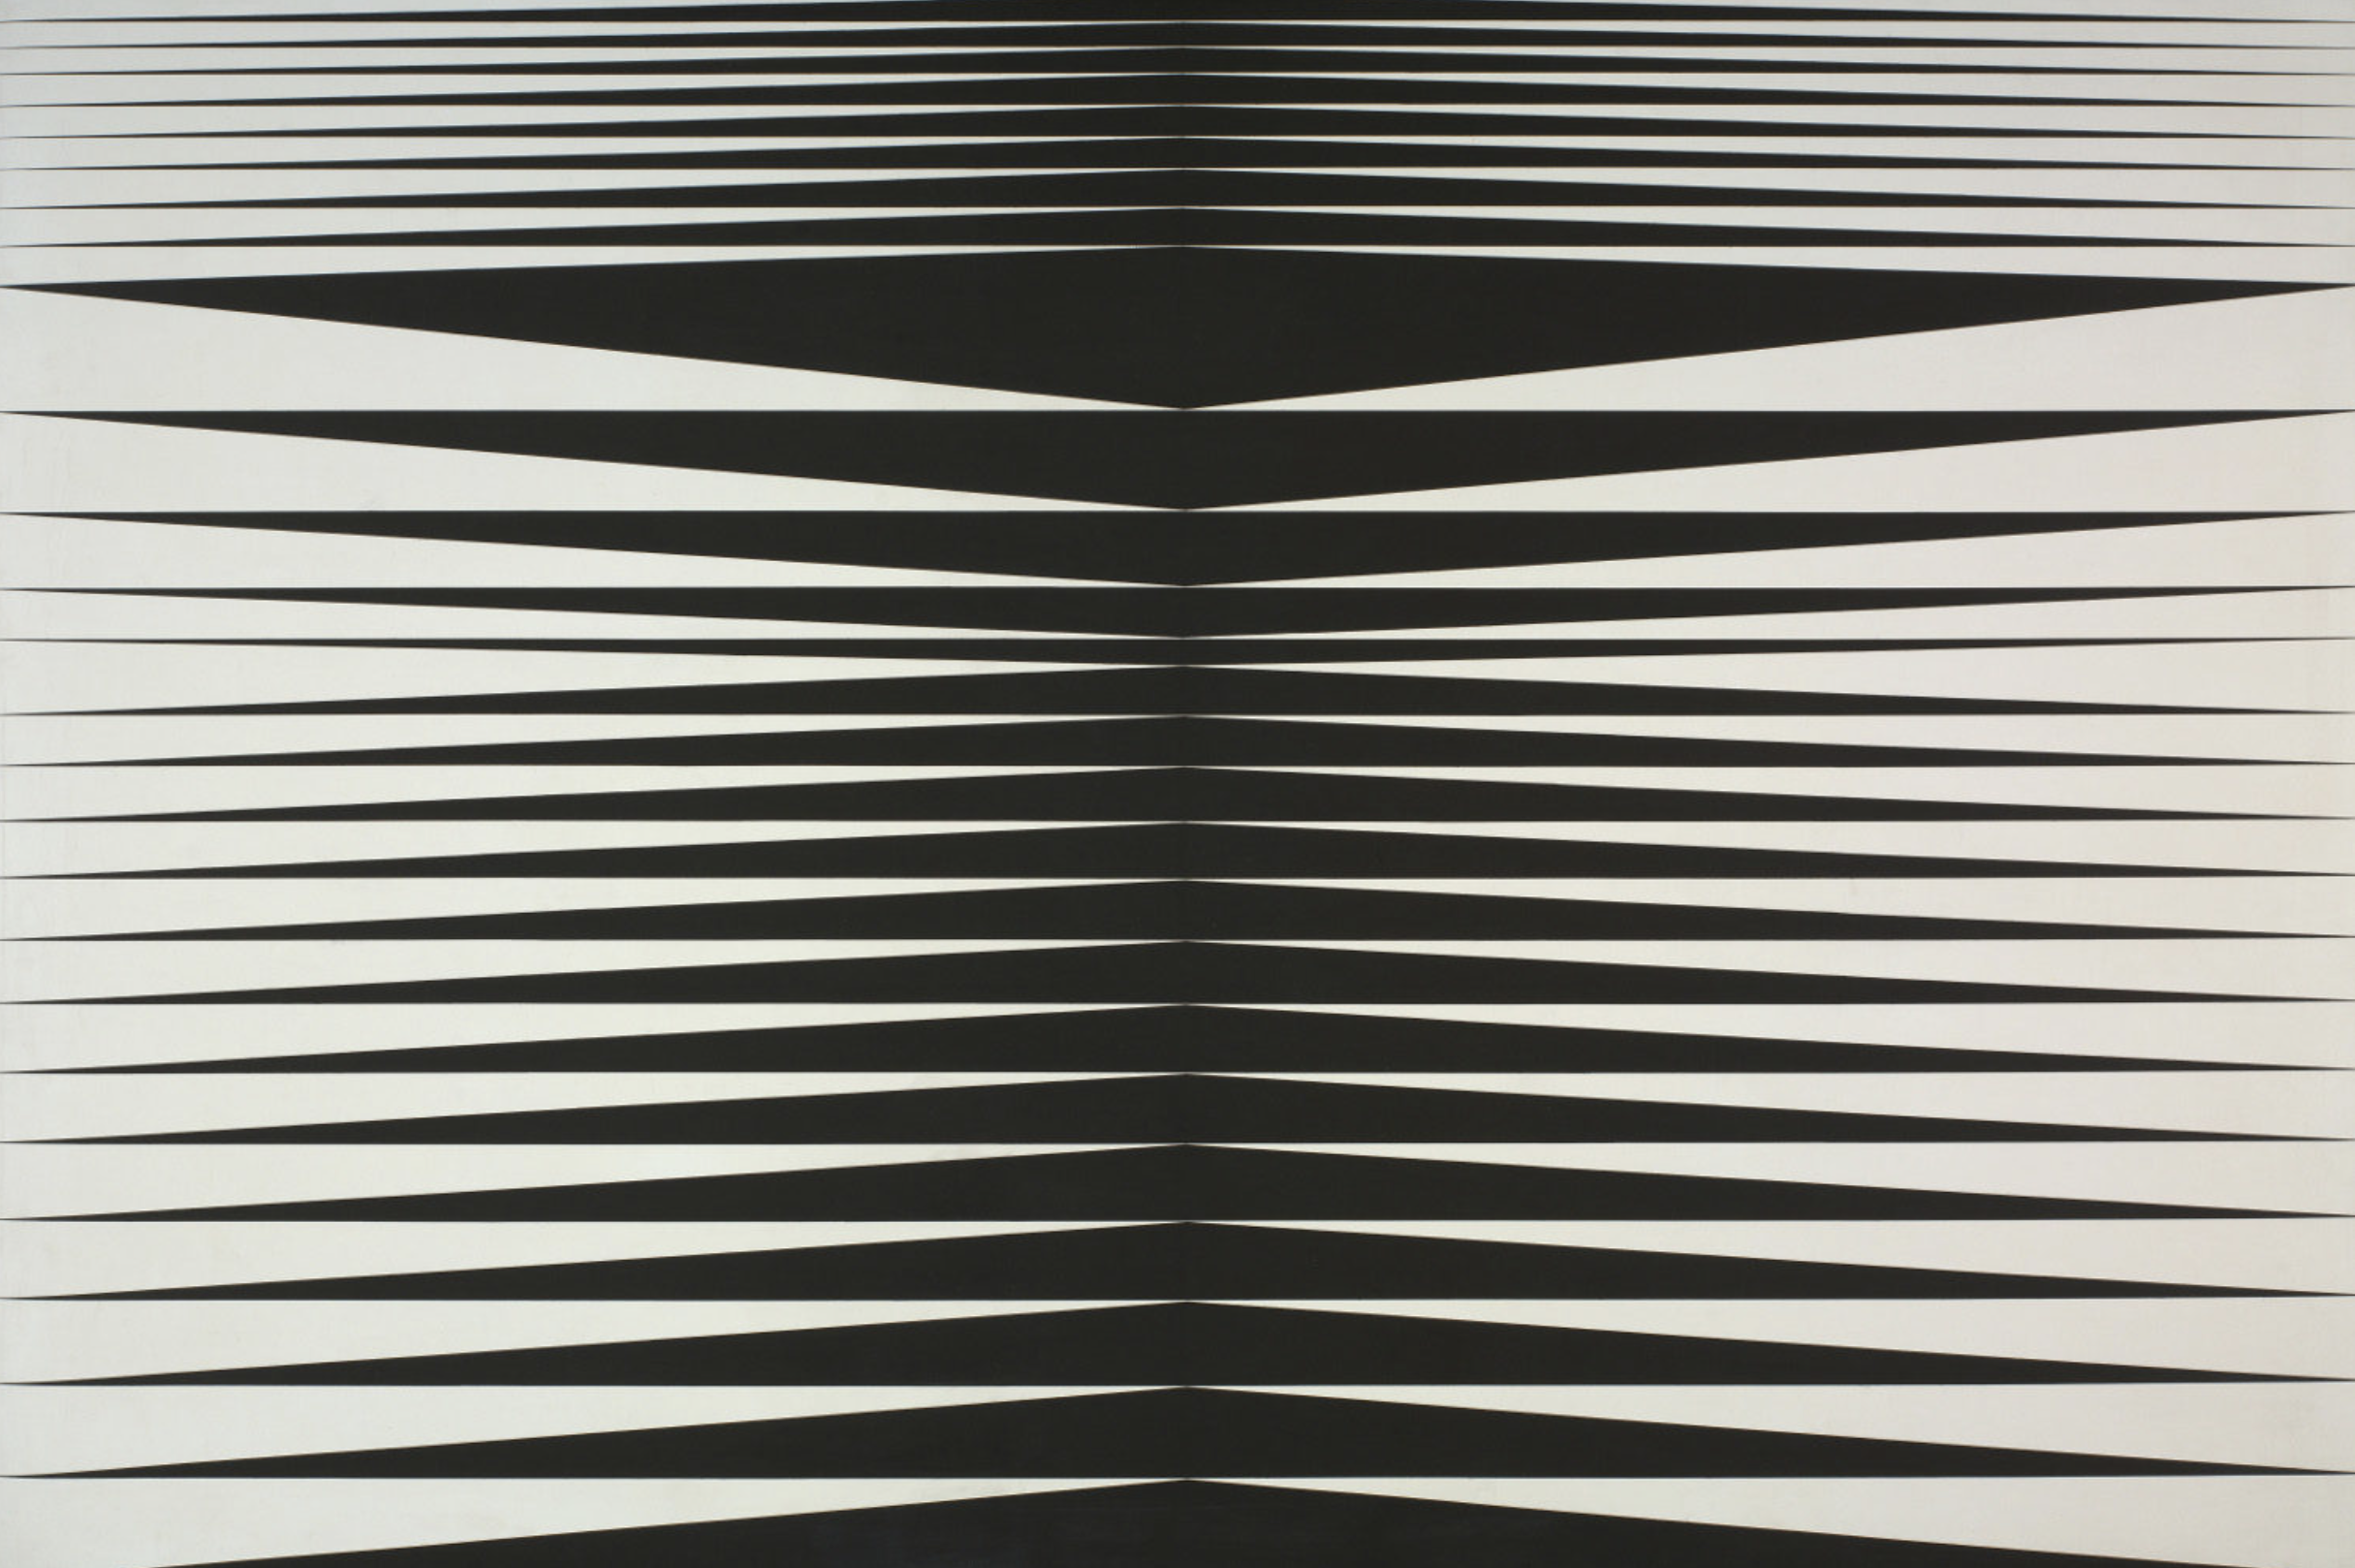 Bridget riley  he  ros montant et descendant  1965